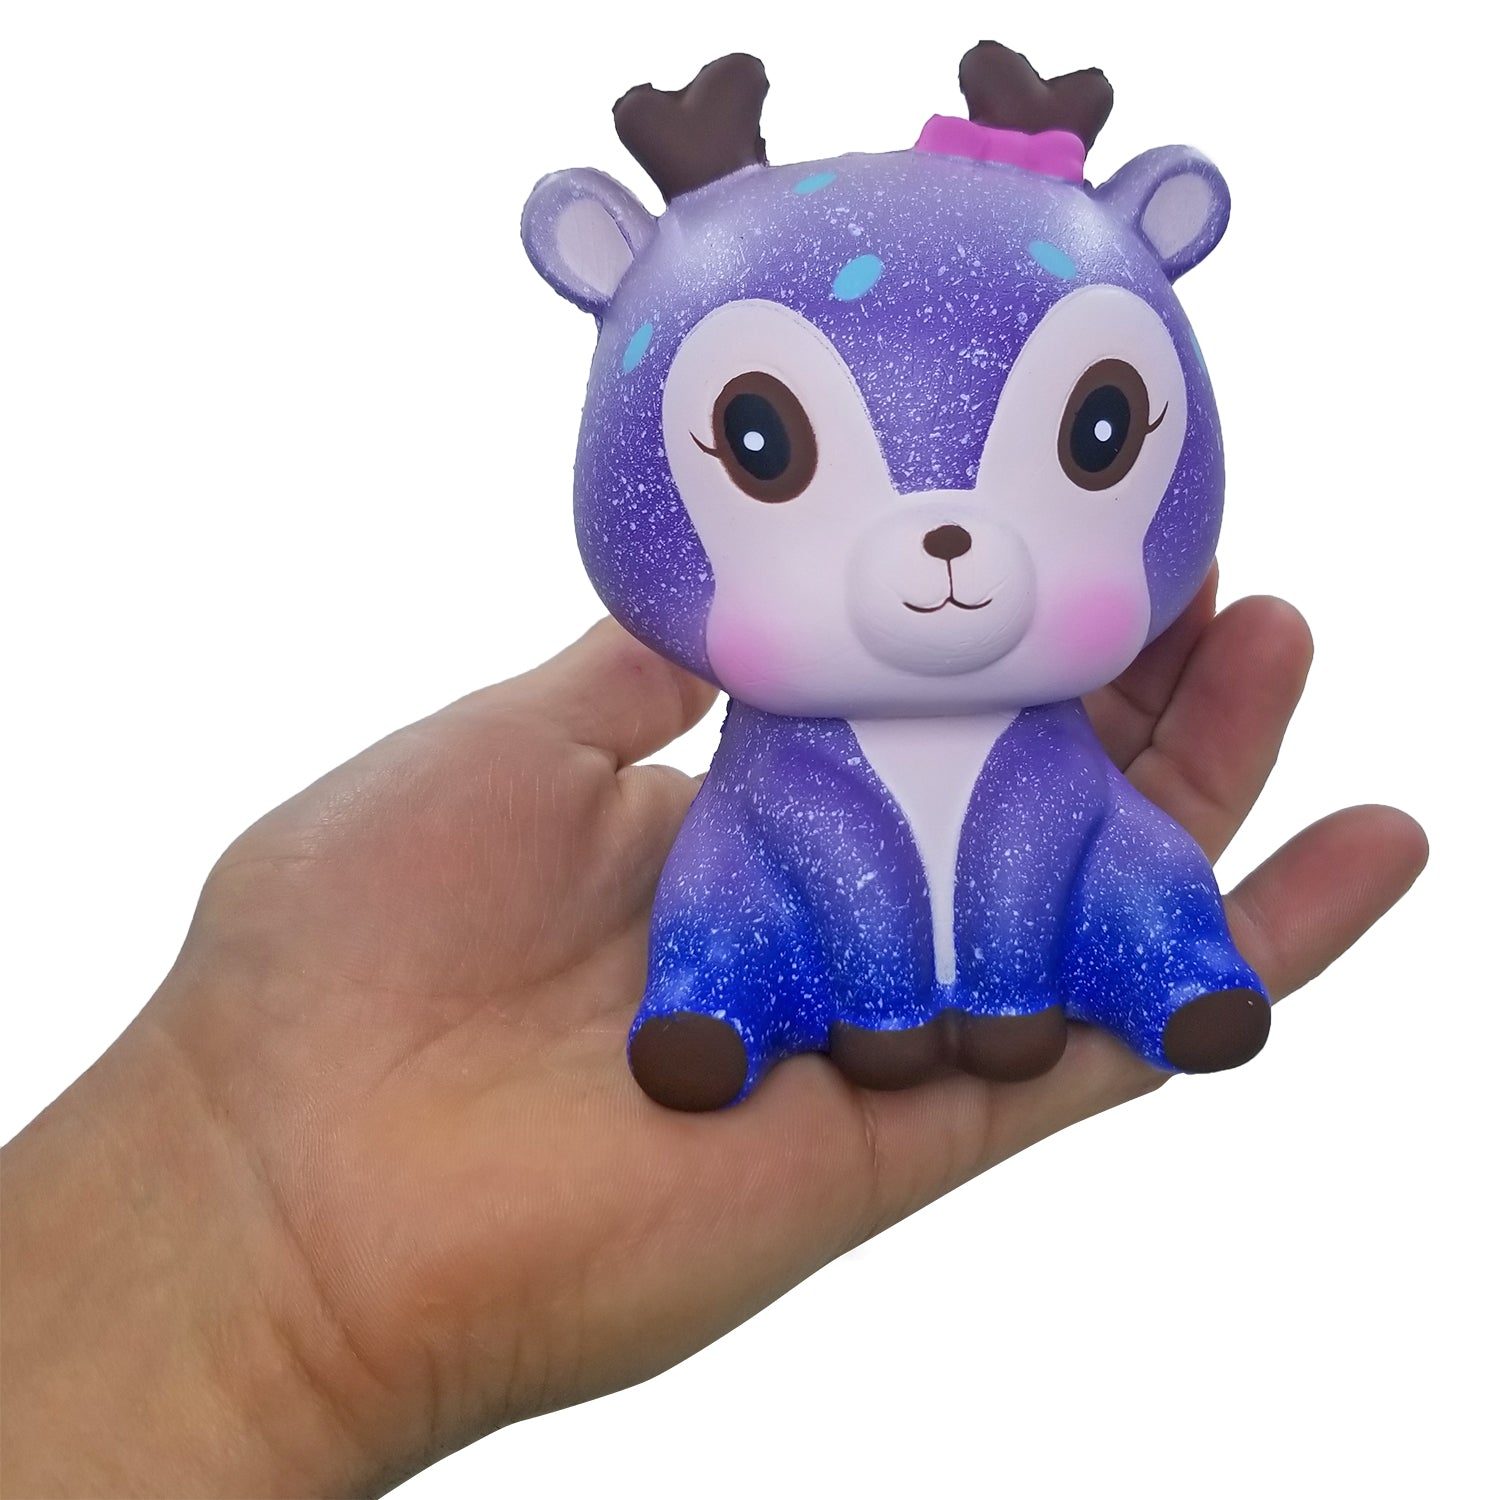 Squish-Eez single Galaxy Cloud Scented Slow Rising Squishy Toy